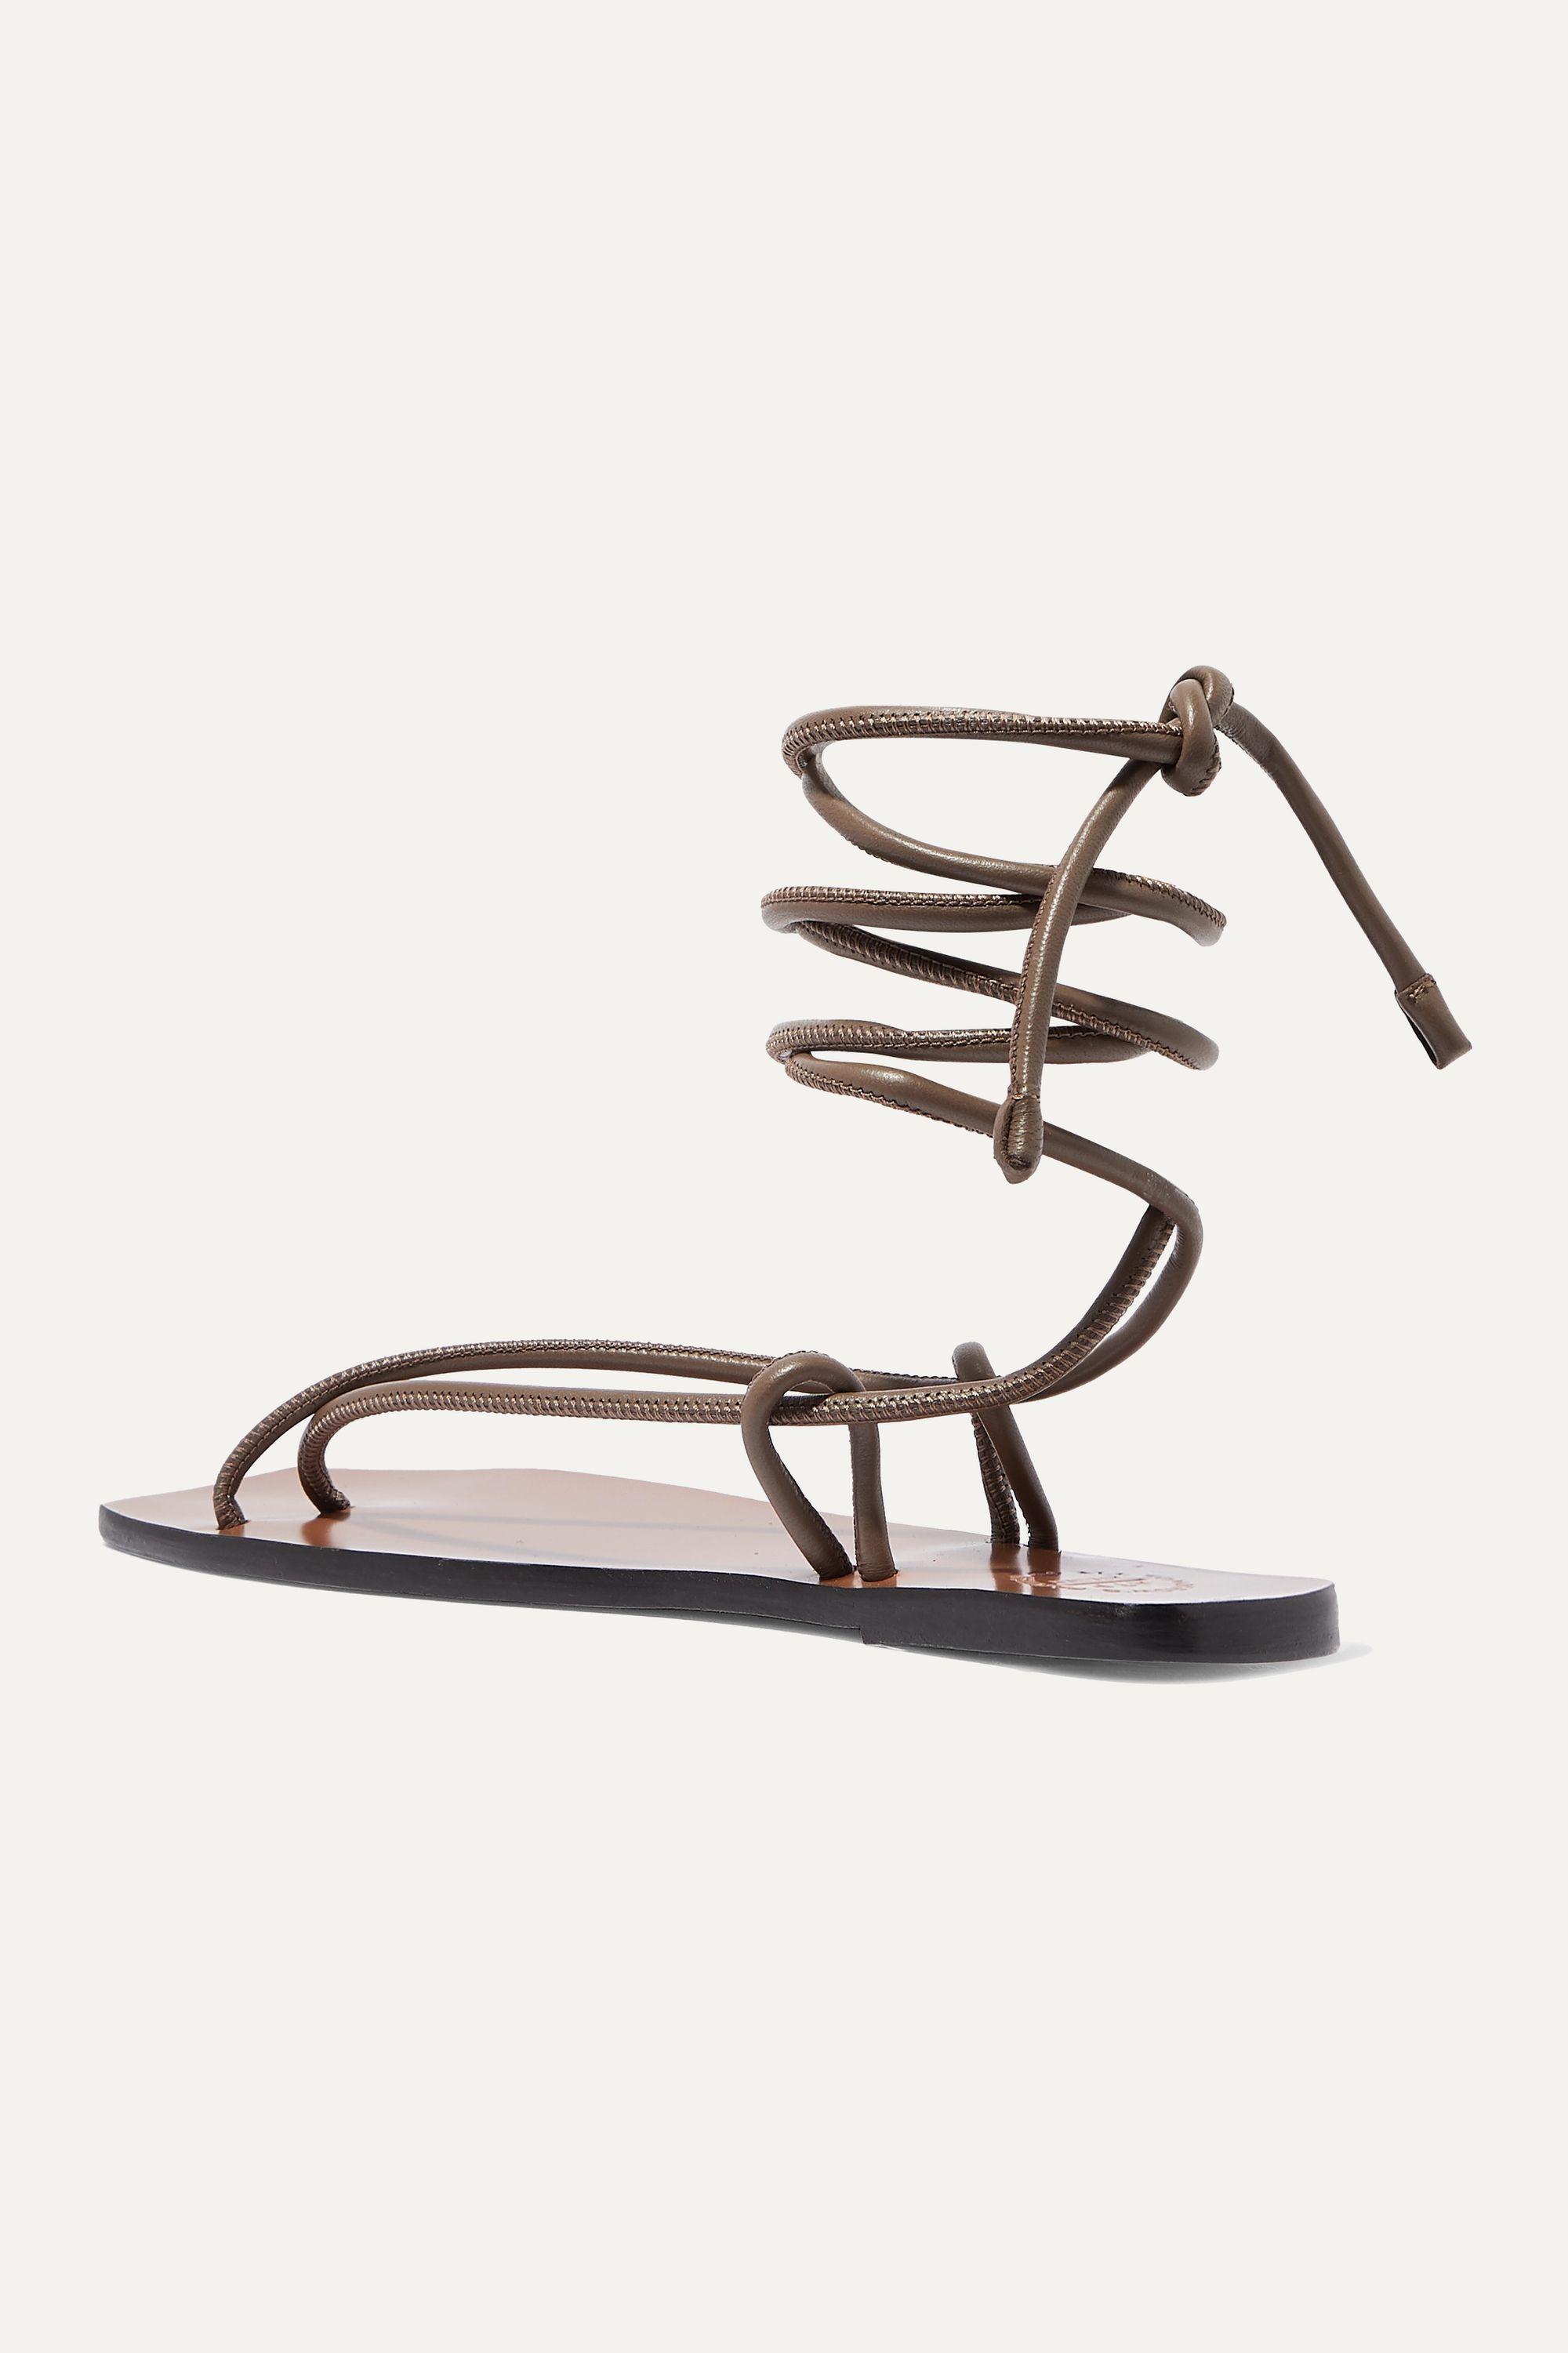 ATP Atelier Alezio leather sandals